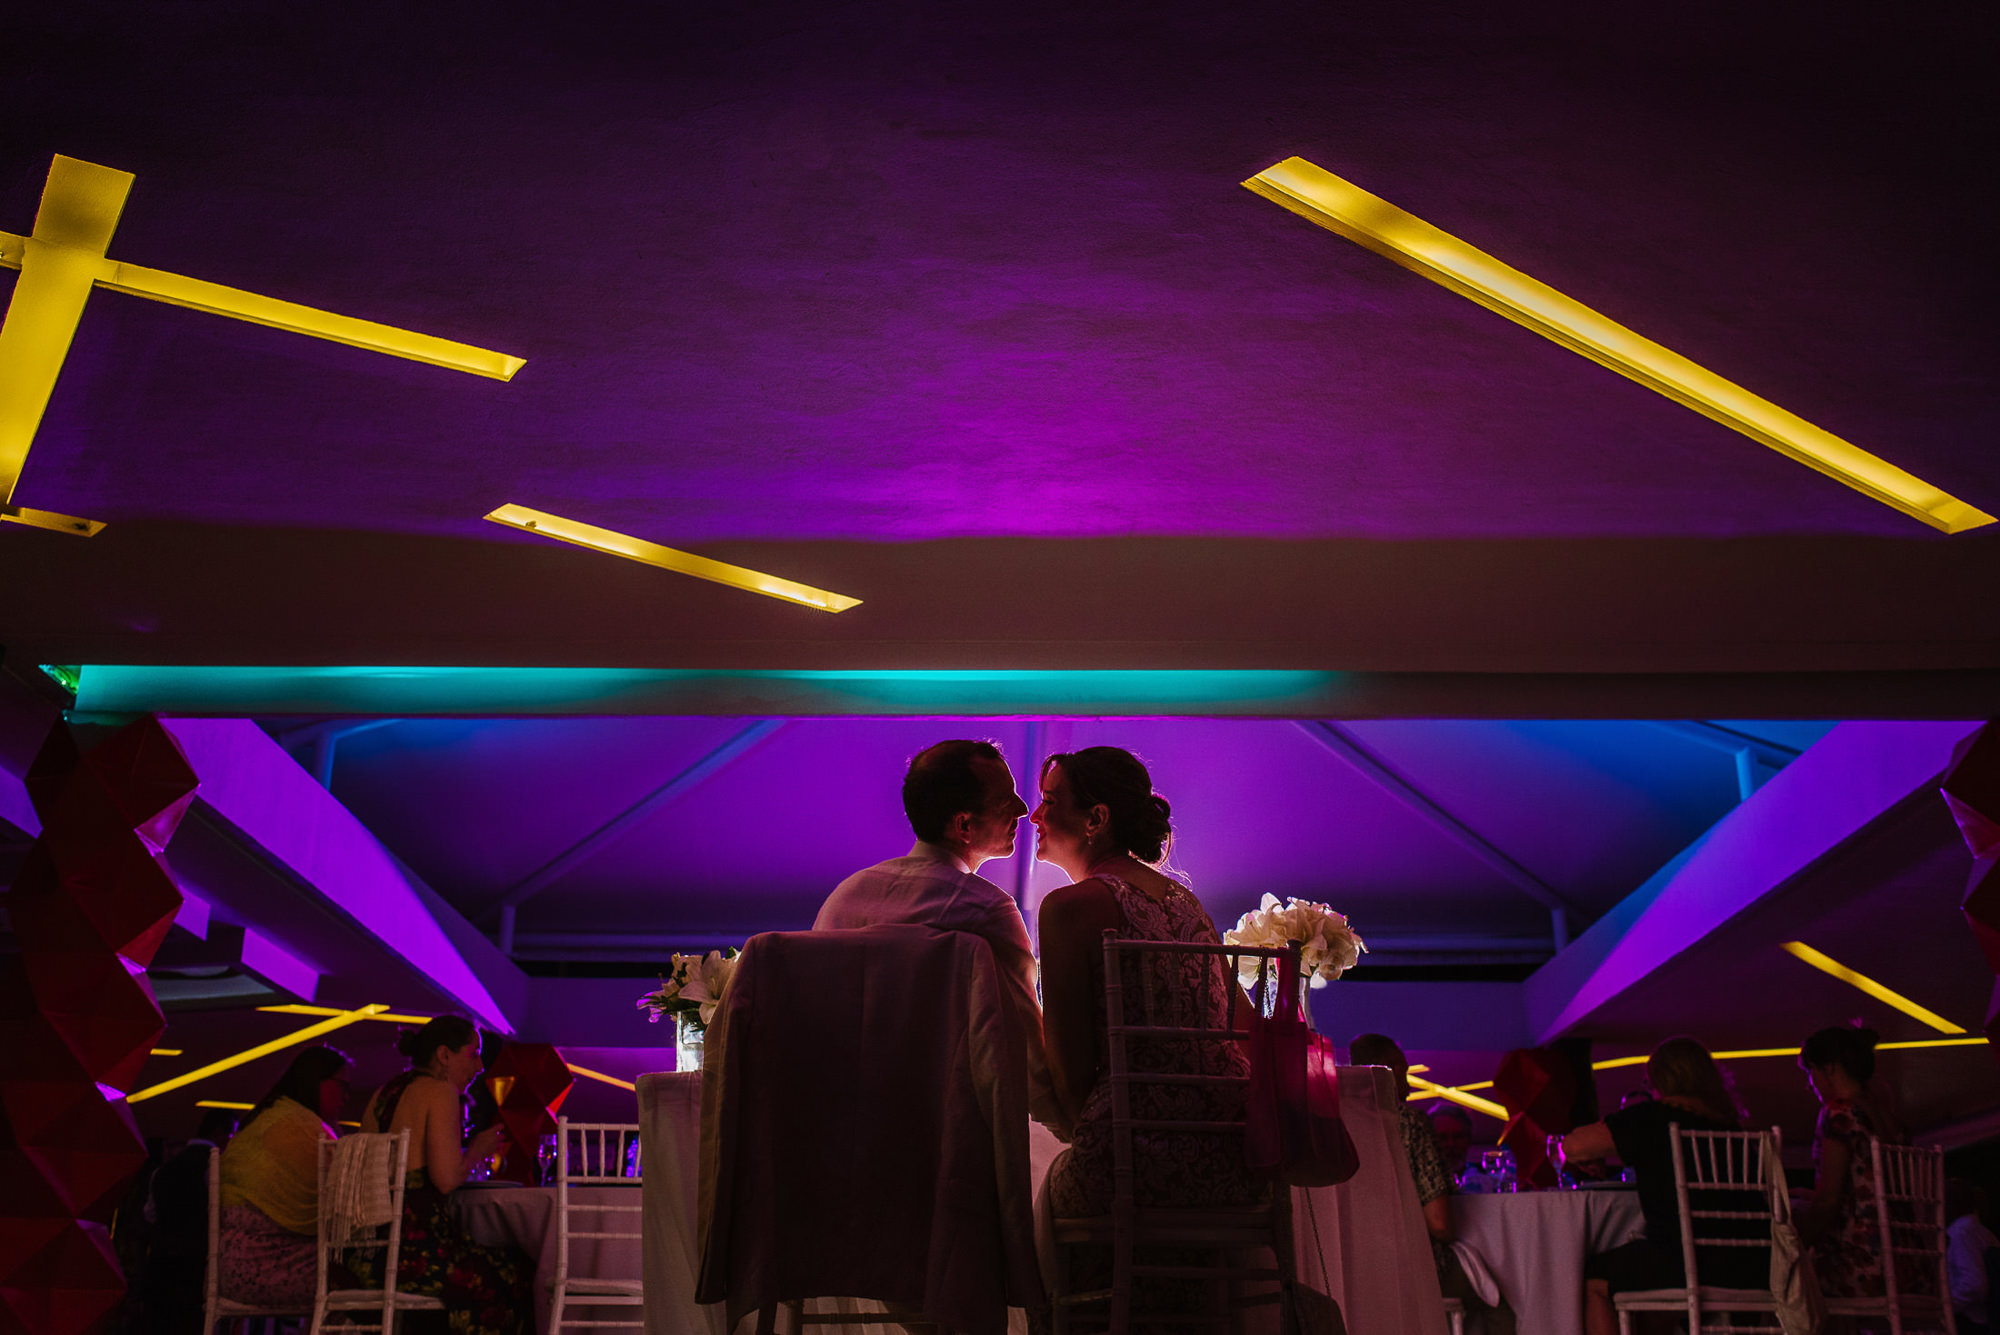 Bride and groom kiss at sweetheart table, with neon lights, by Citlalli Rico